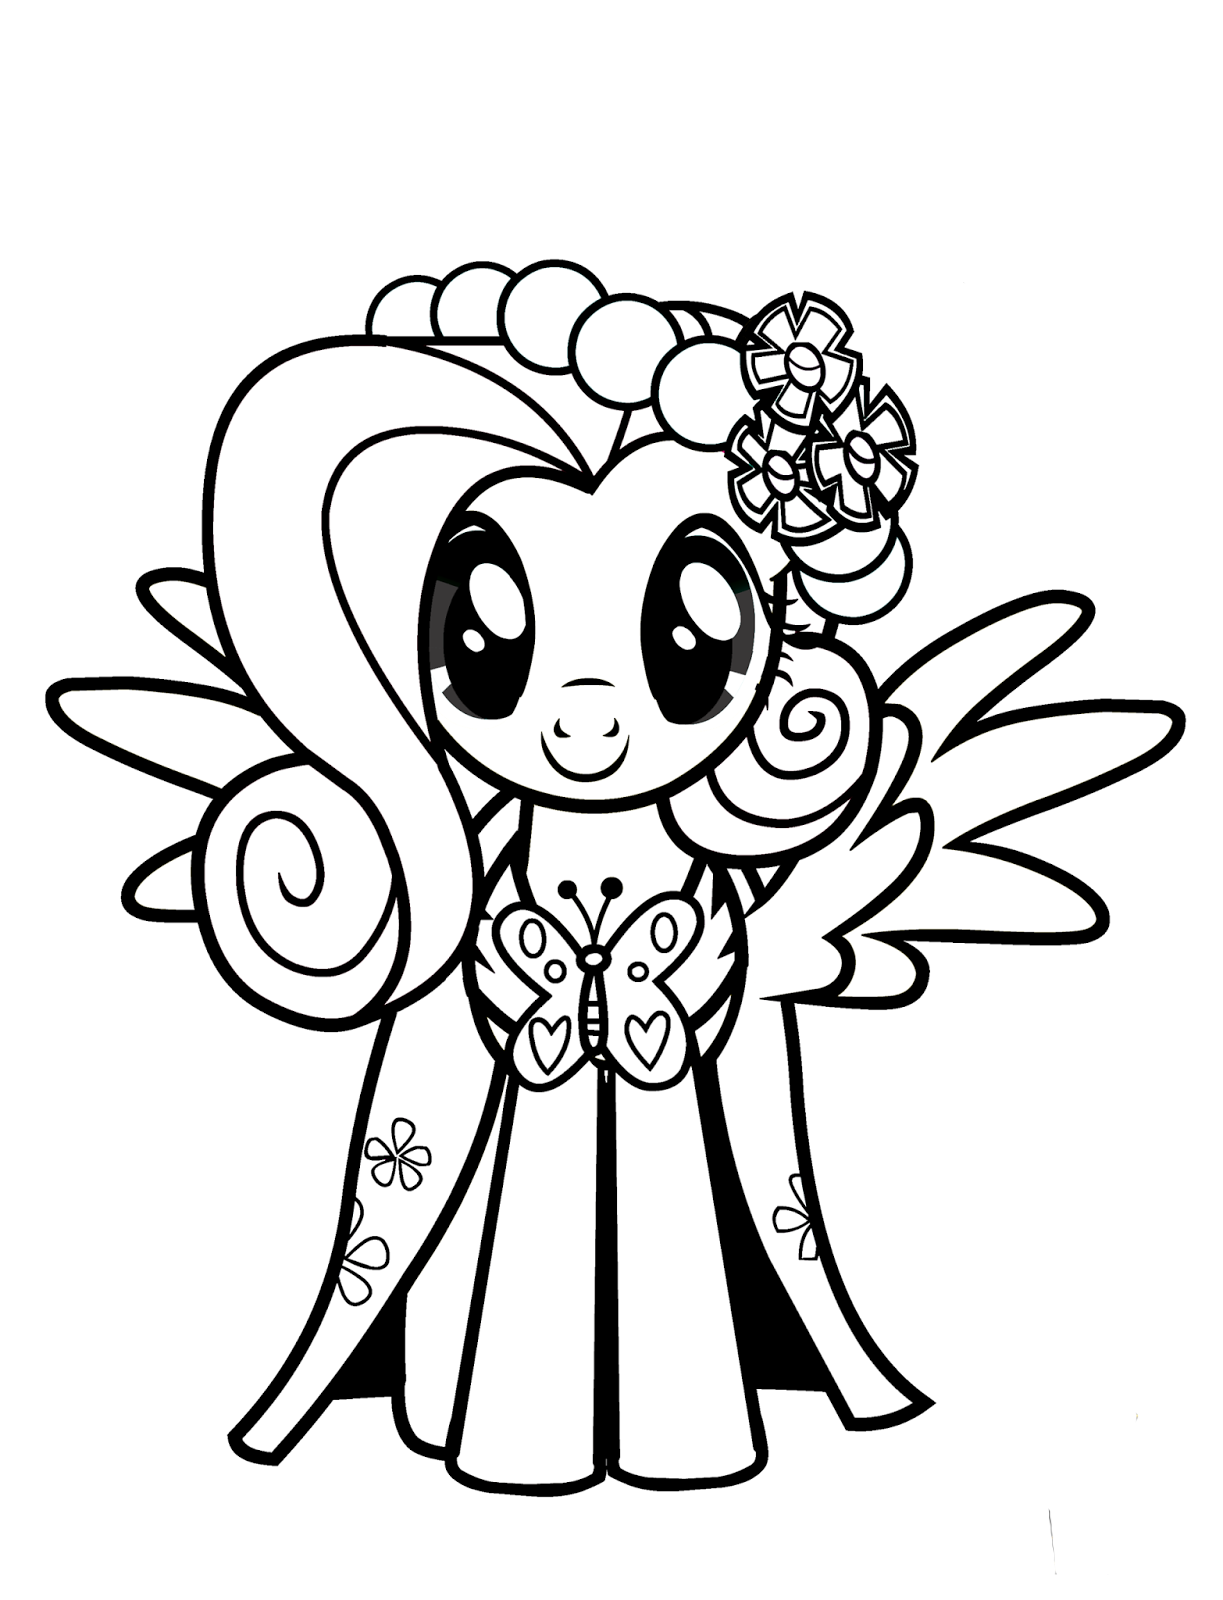 Fluttershy Coloring Pages Captivating Fluttershy Coloring Pages  Best Coloring Pages For Kids Inspiration Design